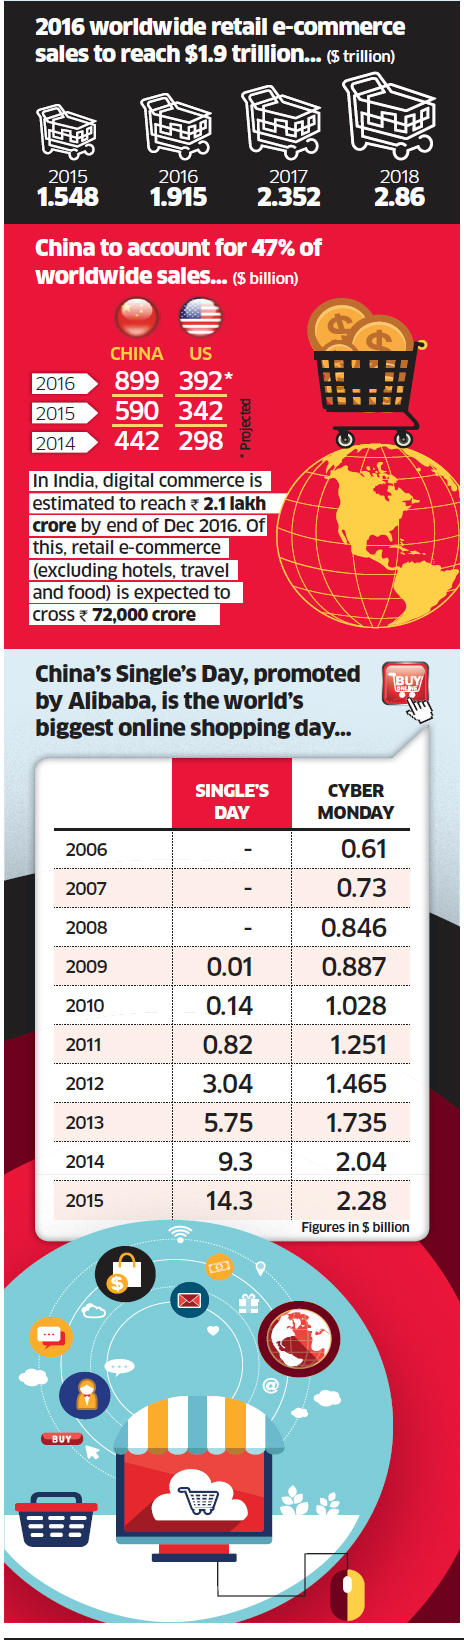 Asia leads e-commerce boom, accounts for 8.7 per cent of total retail spending worldwide